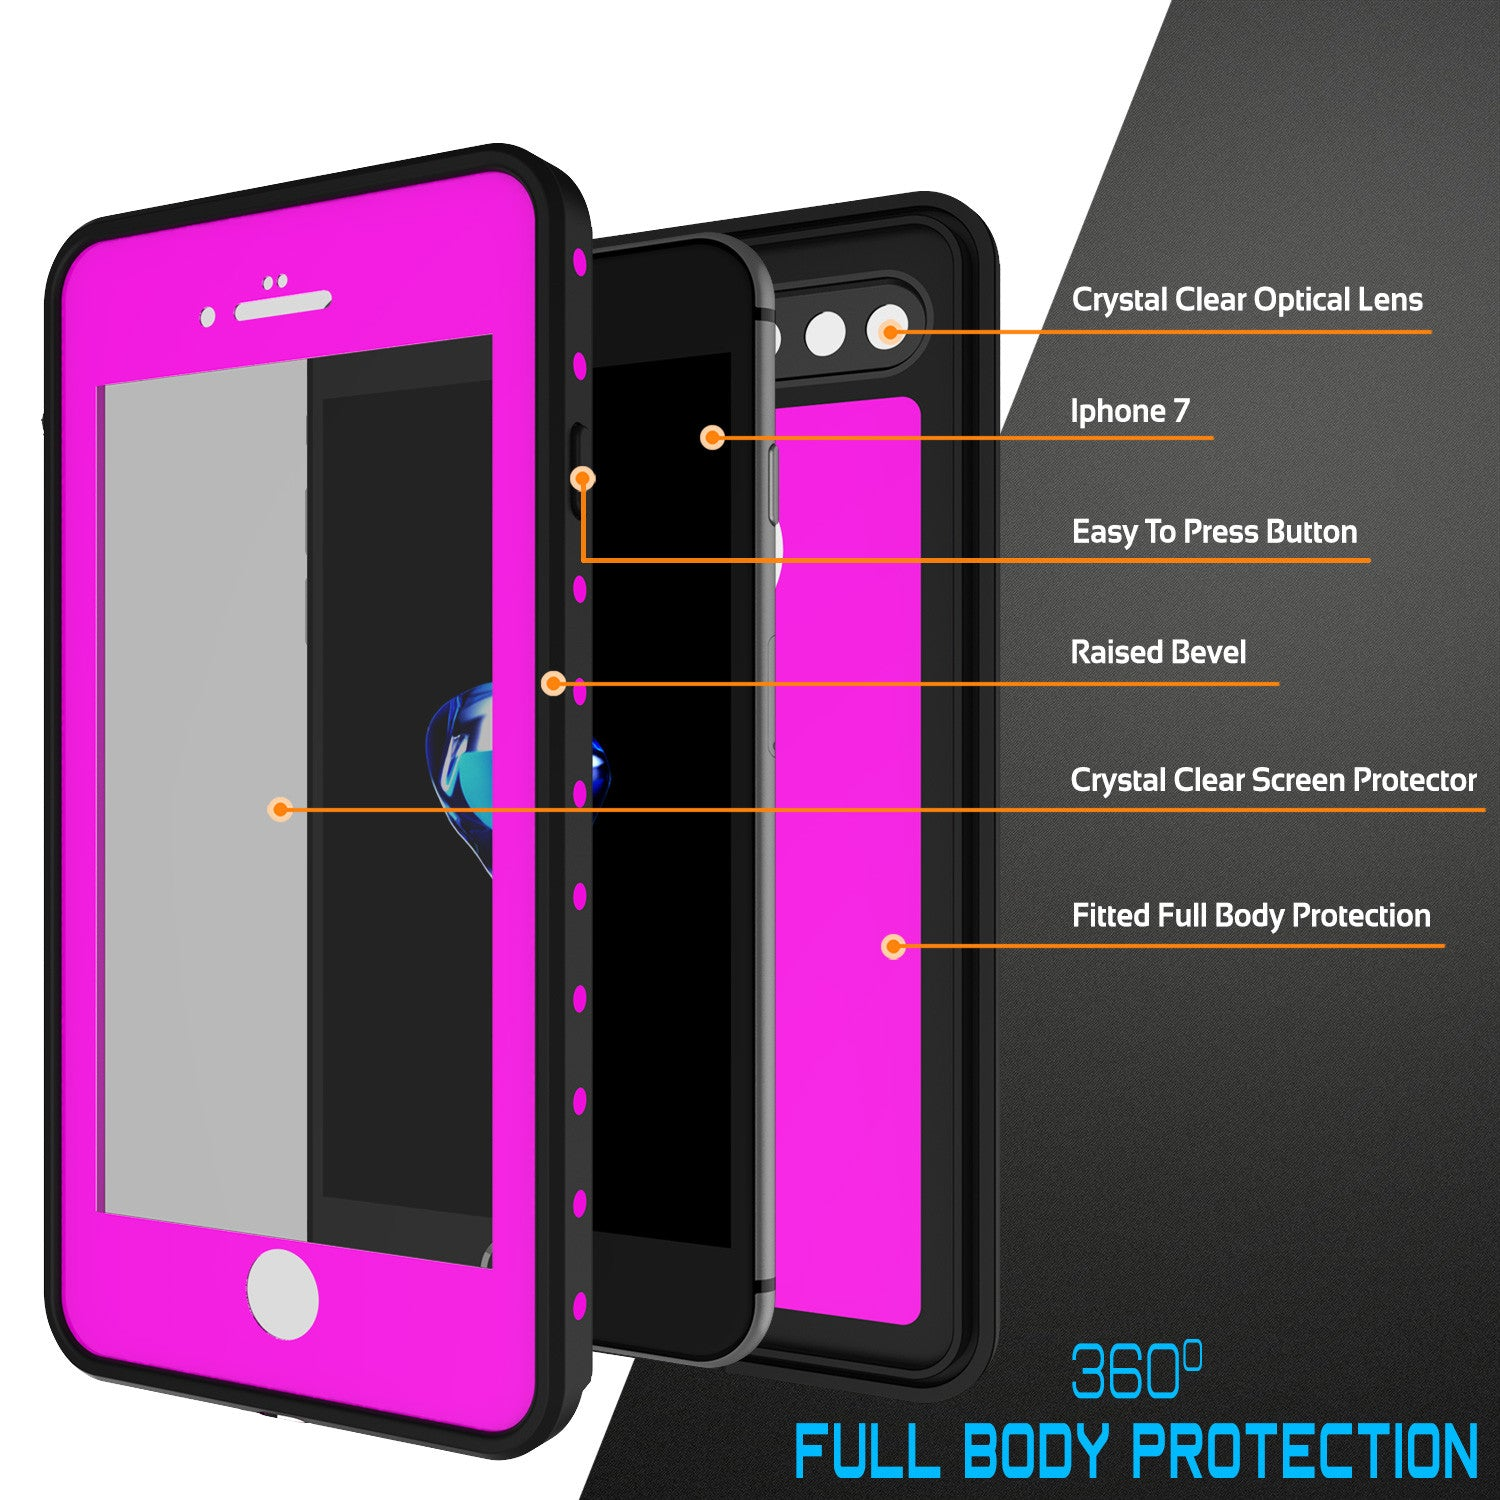 iPhone 7+ Plus Waterproof IP68 Case, Punkcase [Pink] [StudStar Series] [Slim Fit] [Dirtproof]